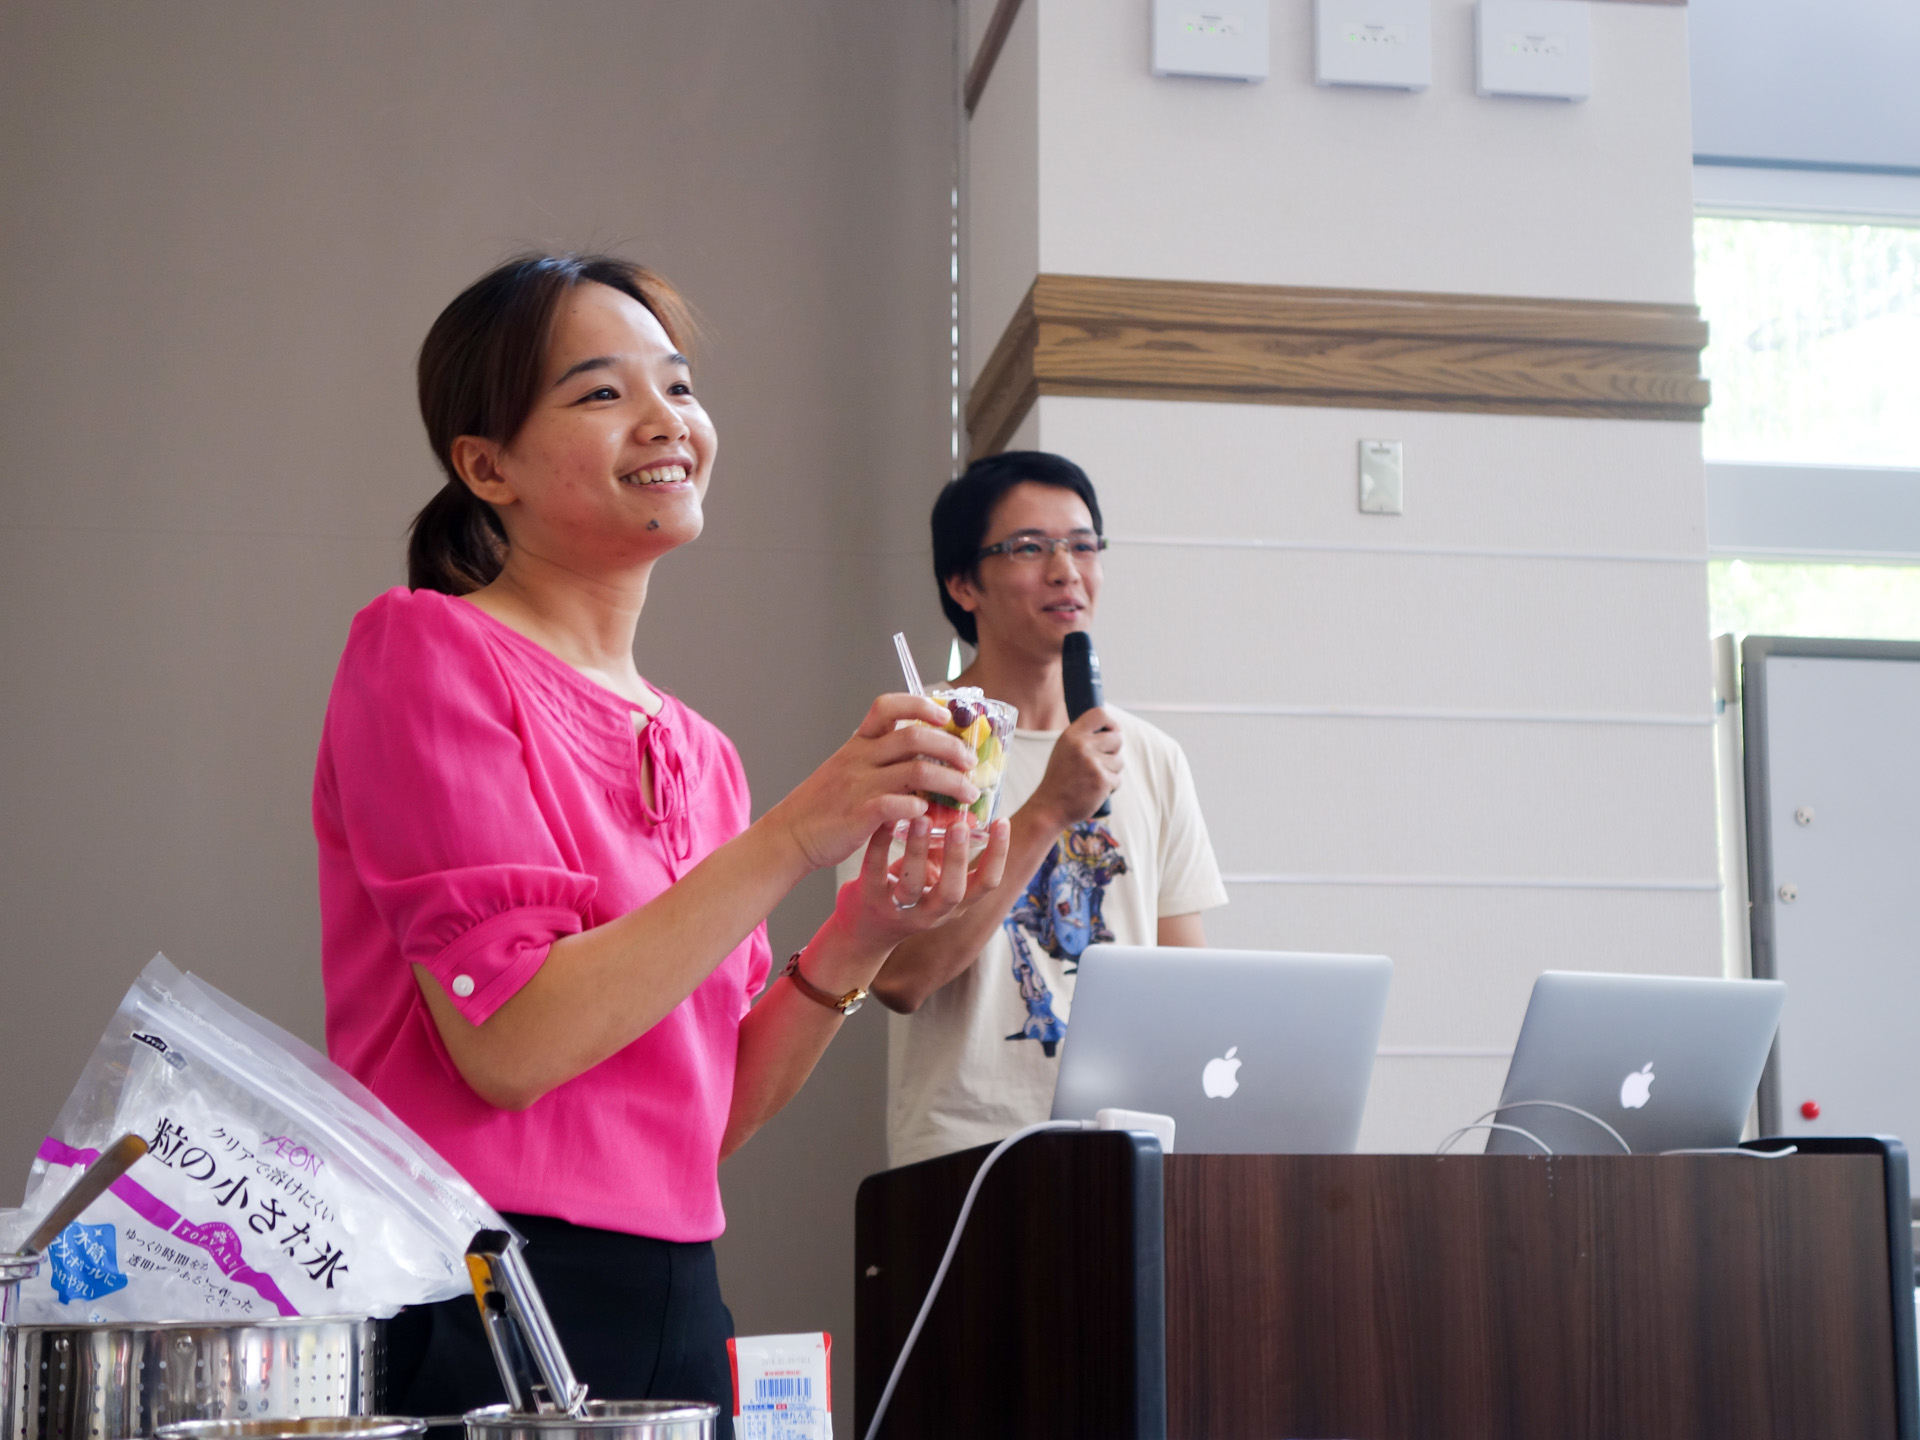 Le Quynh Giang (D1) and Mai Chi Thanh (M1) demonstrate how to make Chè Trái Cây, a popular Vietname fruit salad style dessert and street food.